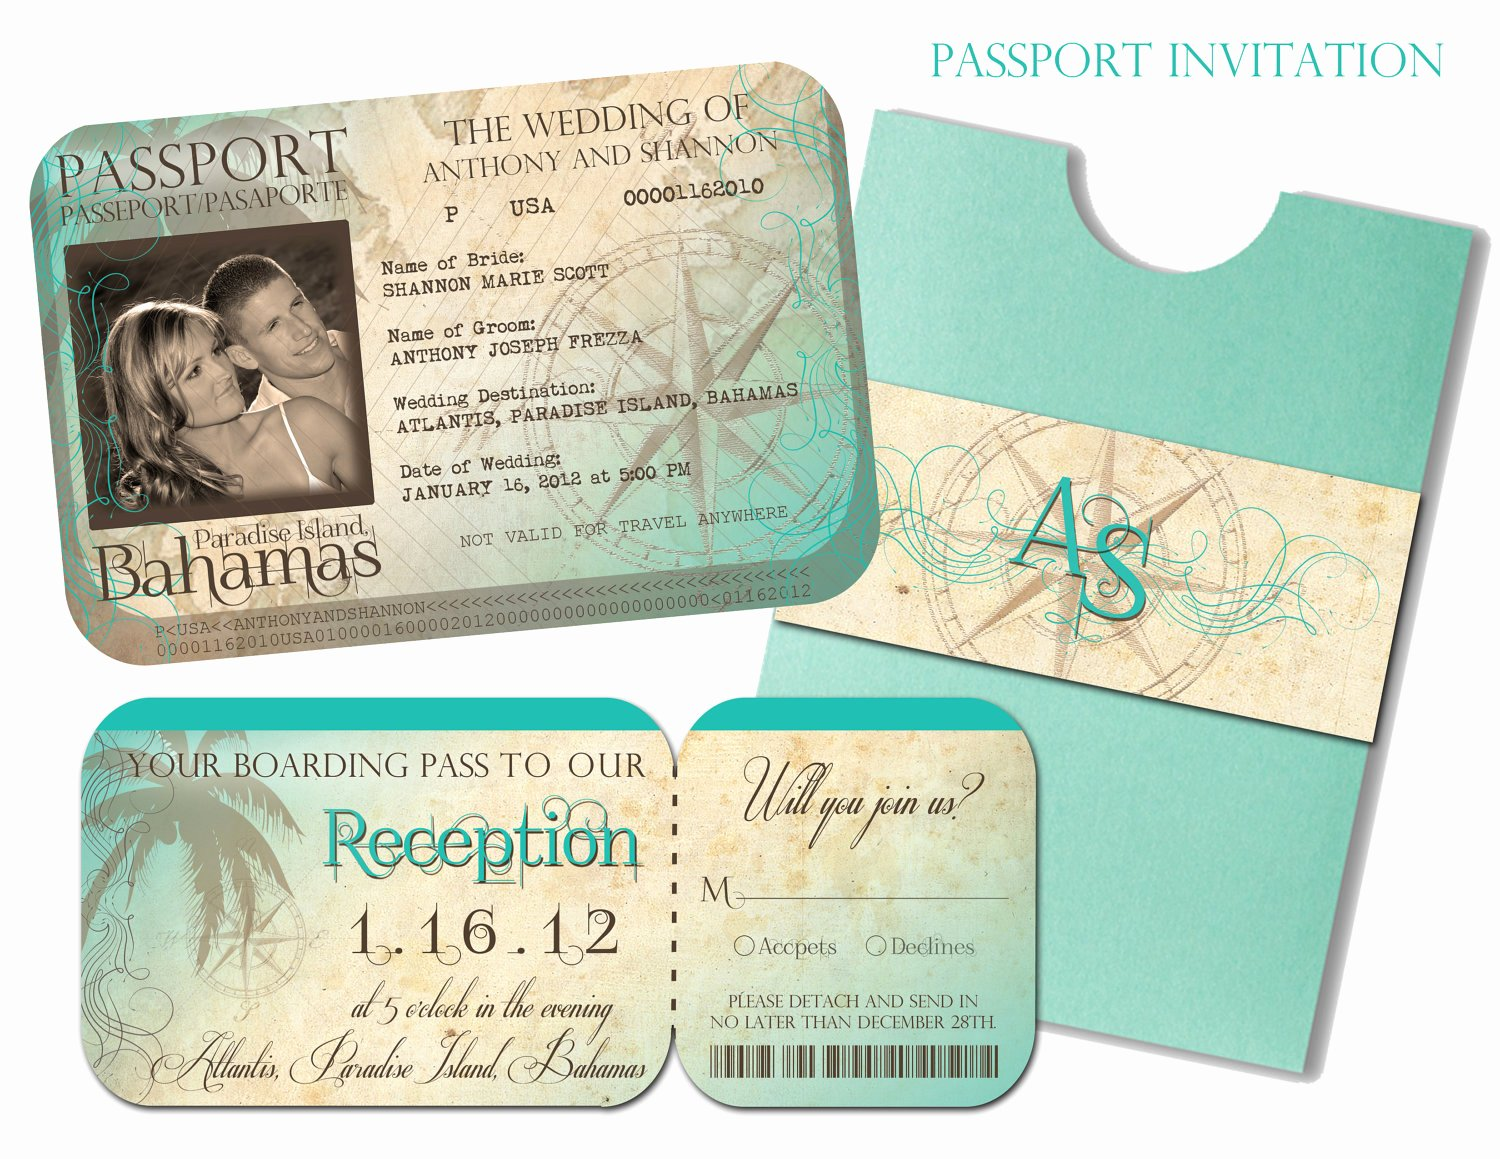 Boarding Pass Wedding Invitations Template Fresh Passport Wedding Invitation and Boarding Pass Reception and